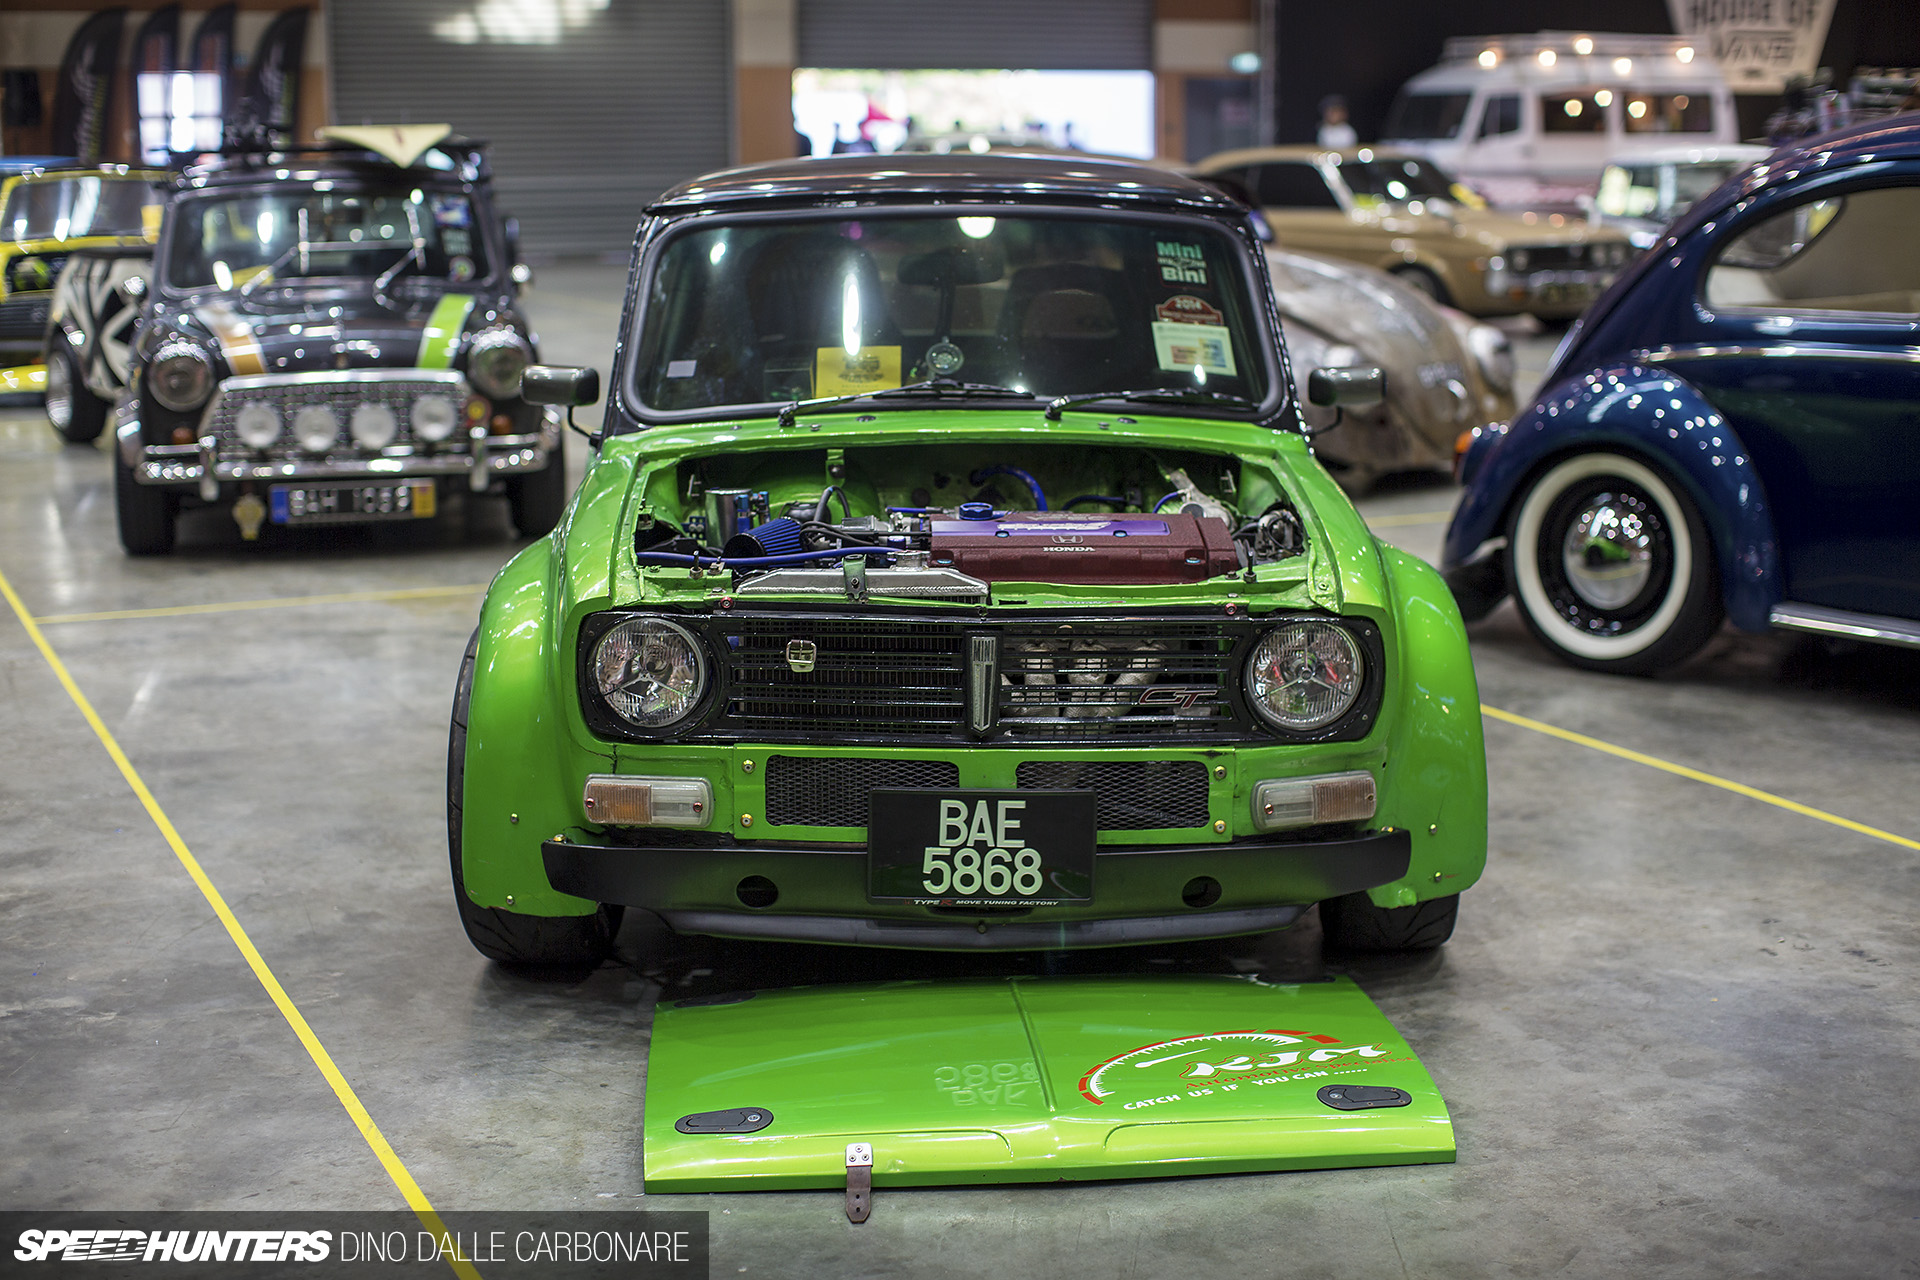 Temple Of Vtec >> A Mini With JDM Aspirations - Speedhunters